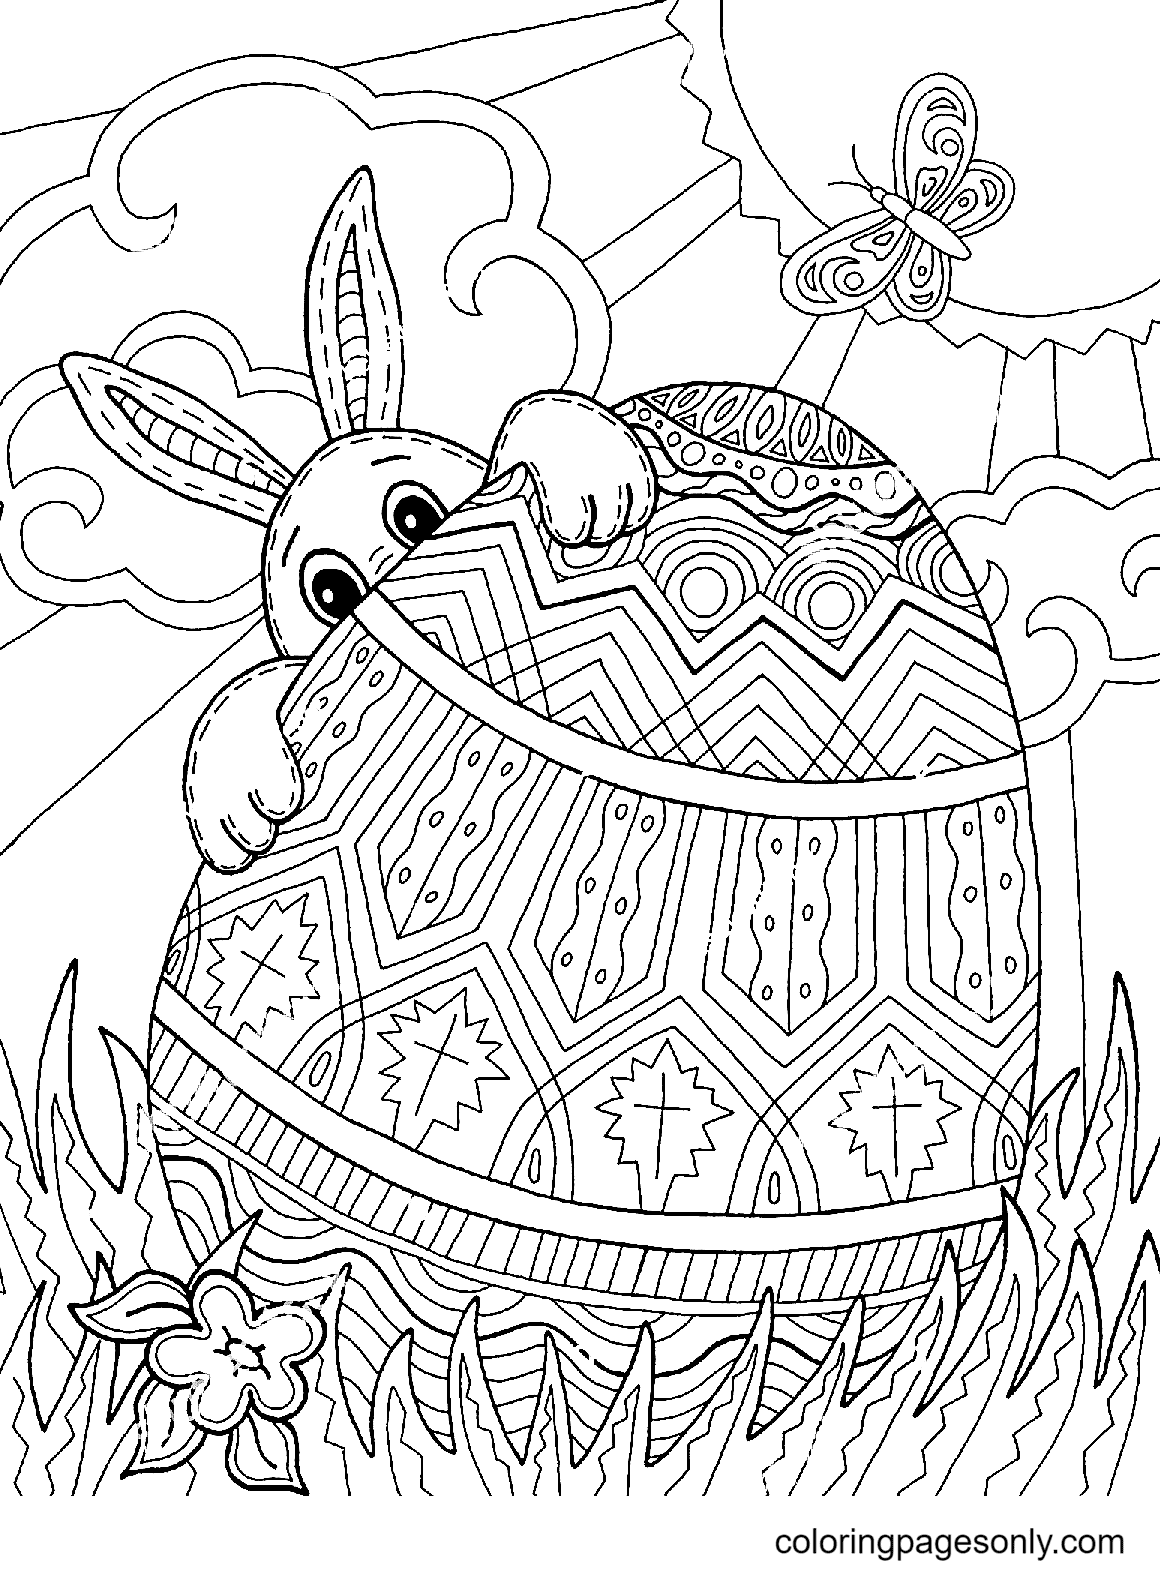 Easter Bunny Egg Hunt Coloring Page